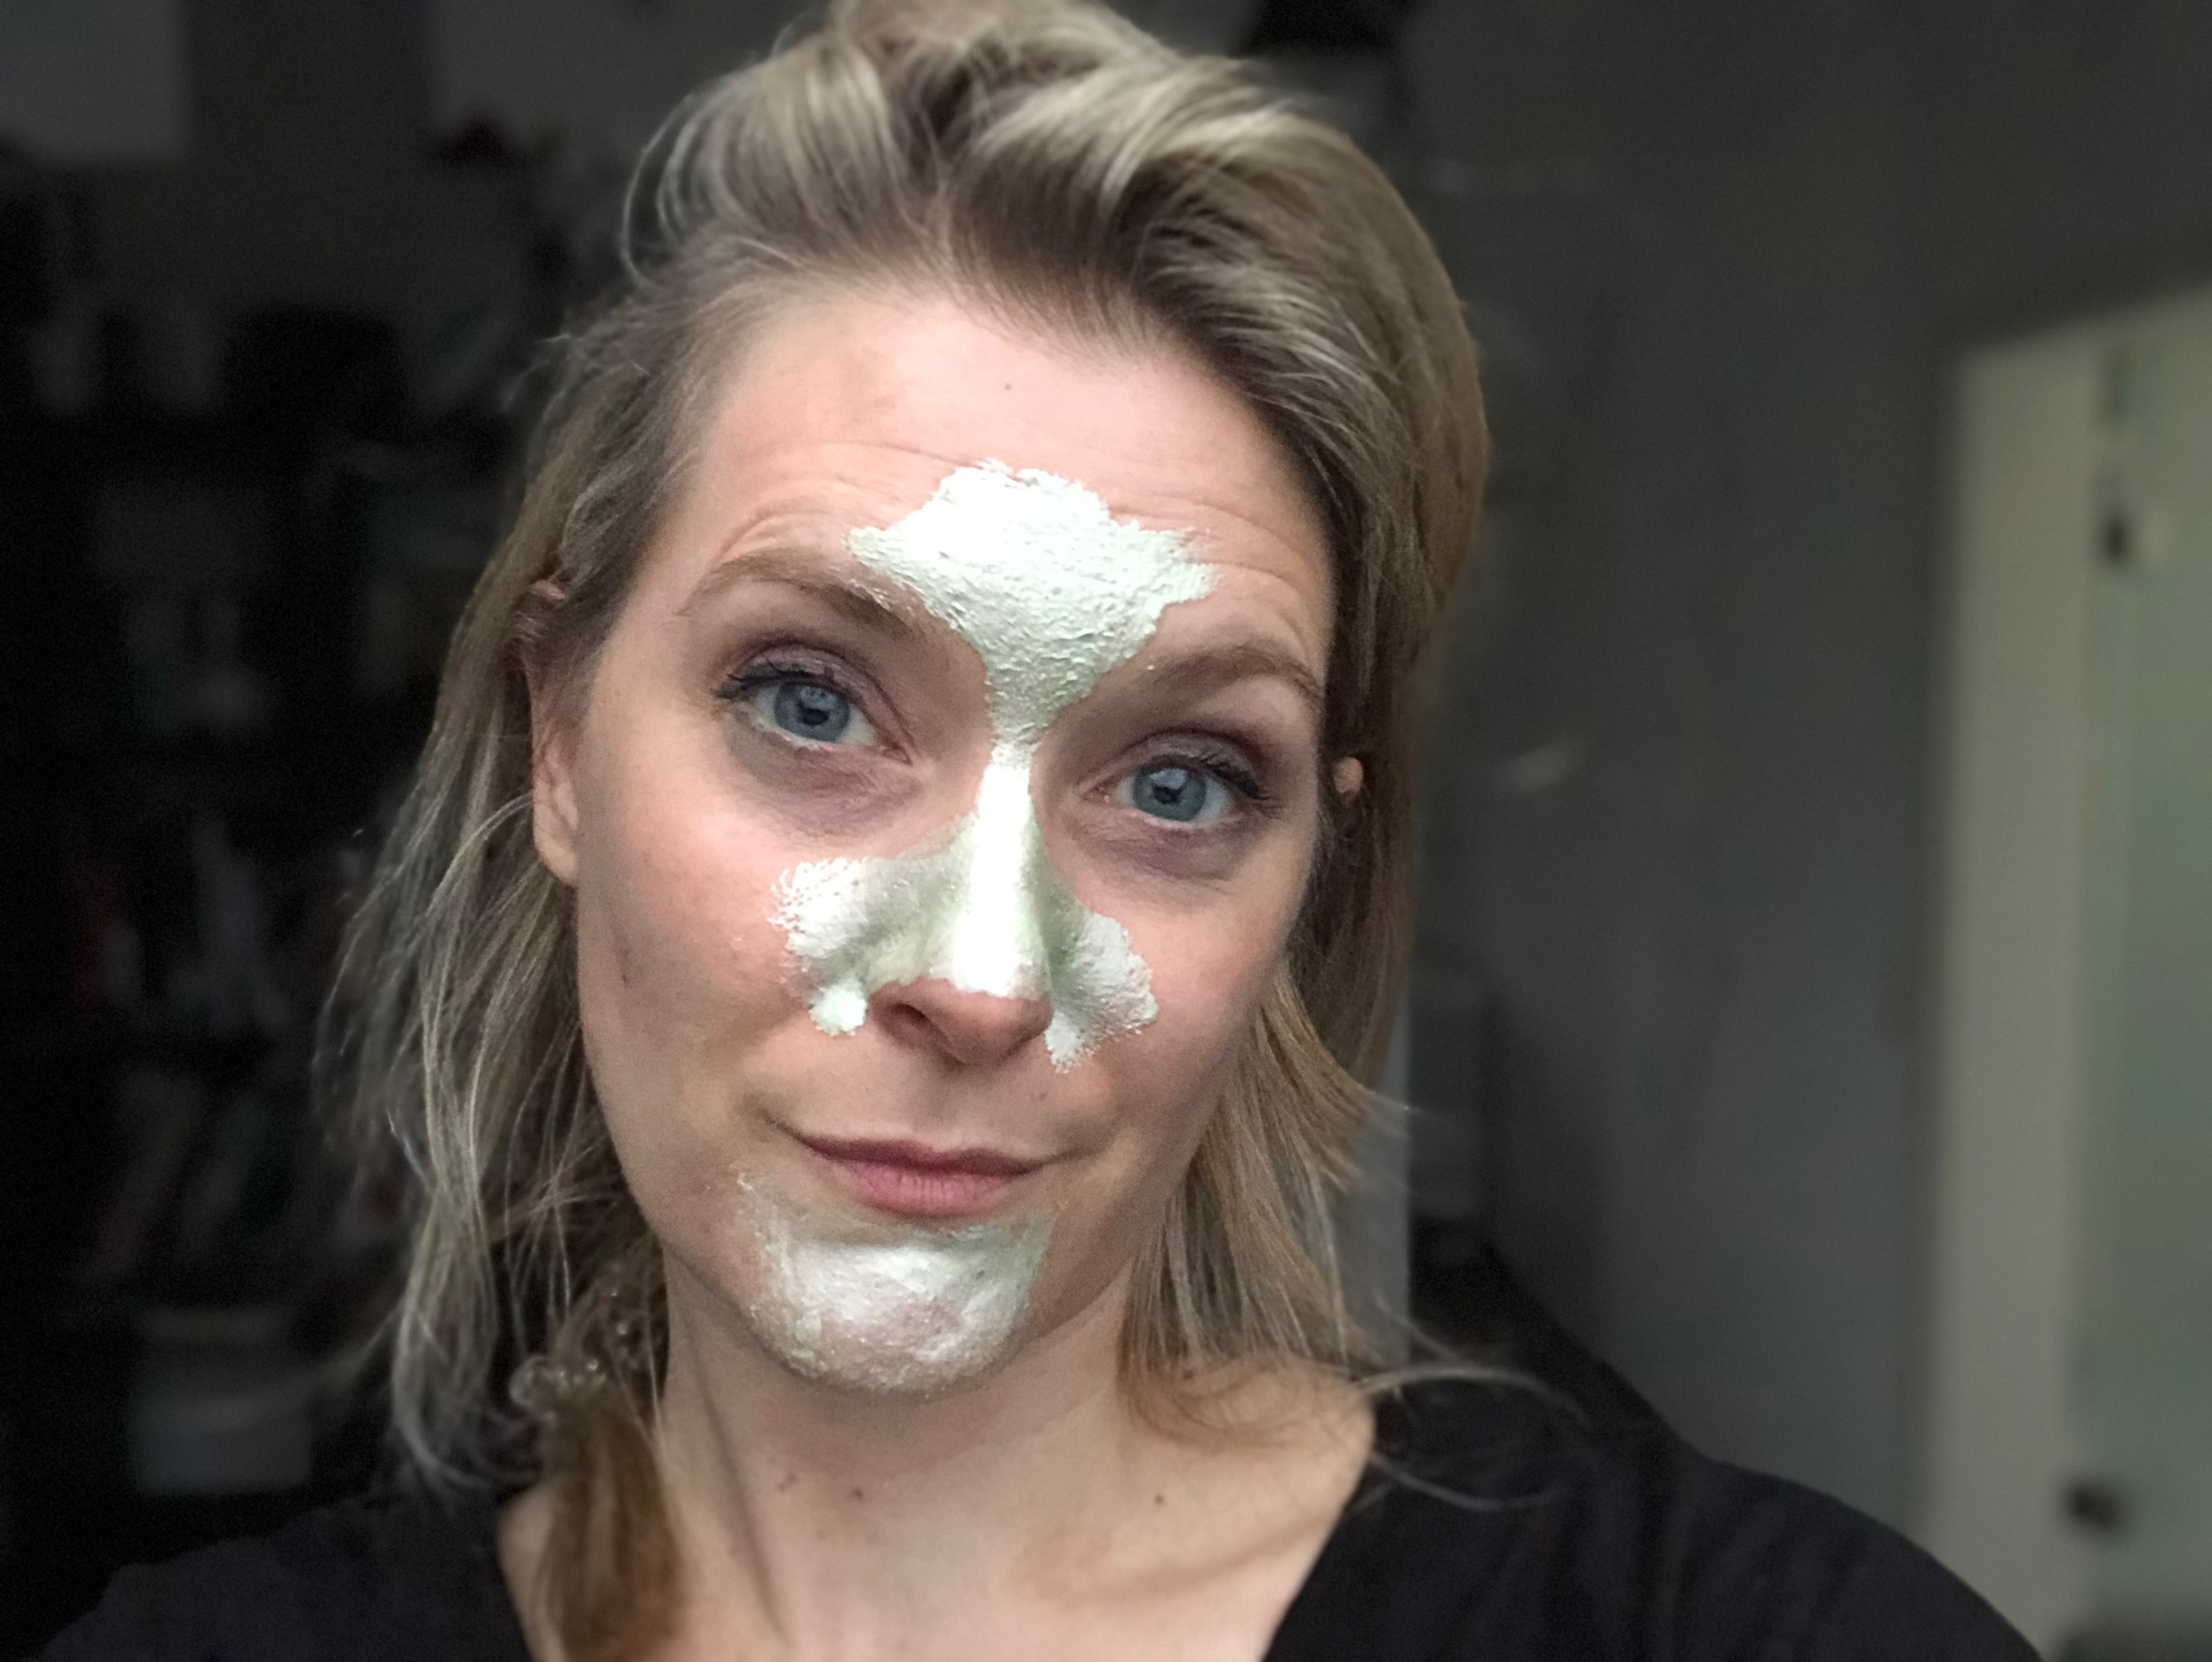 pixi T Zone Peel Off Mask on the face